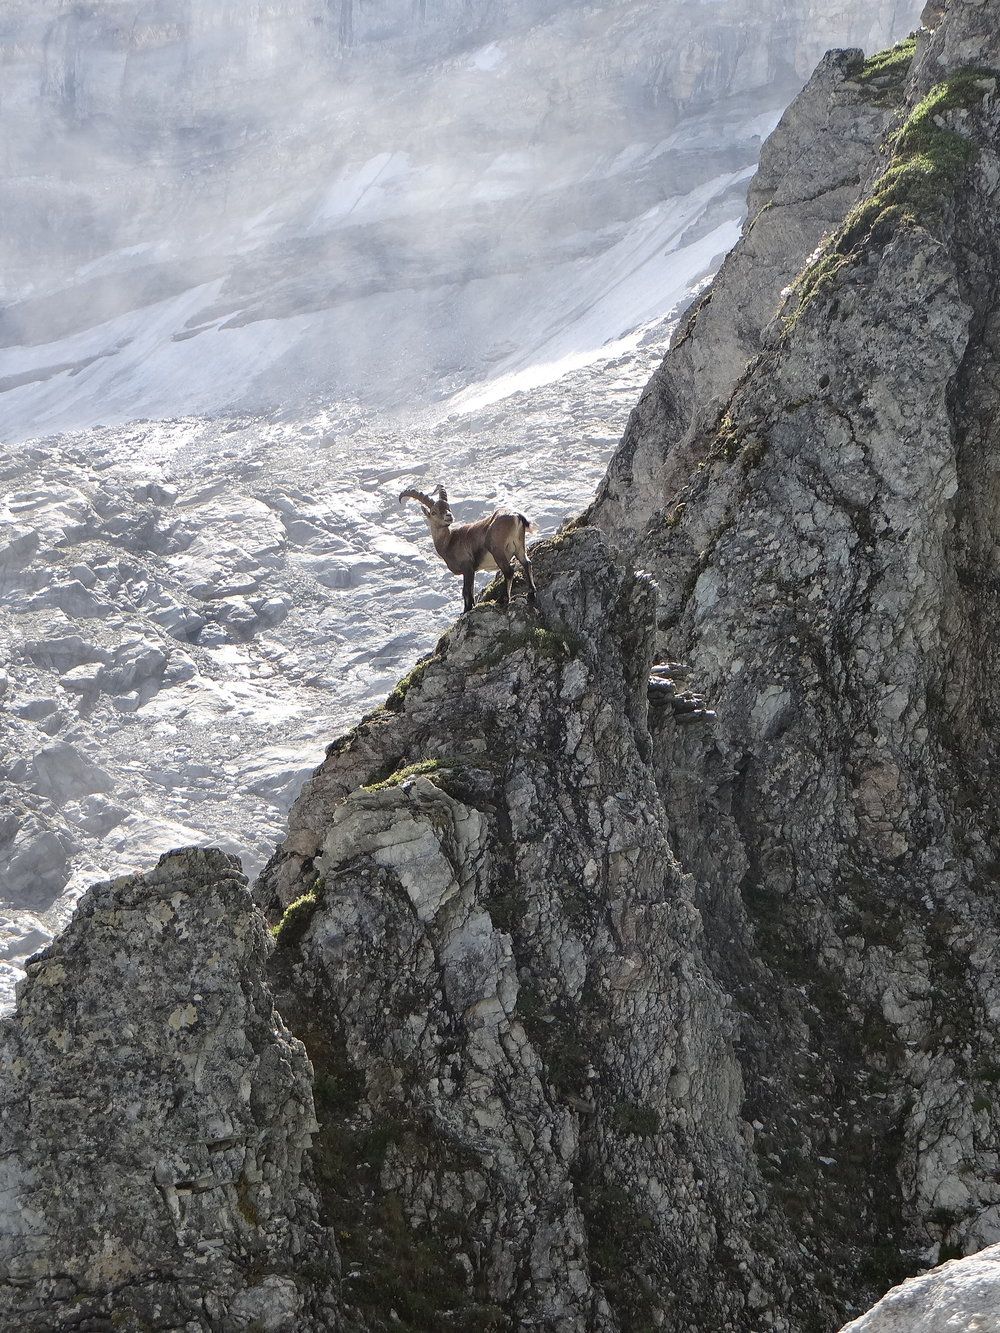 An Ibex, presumably a descendant of the lucky survivor from the Panjshir folktale. (Wikimedia)